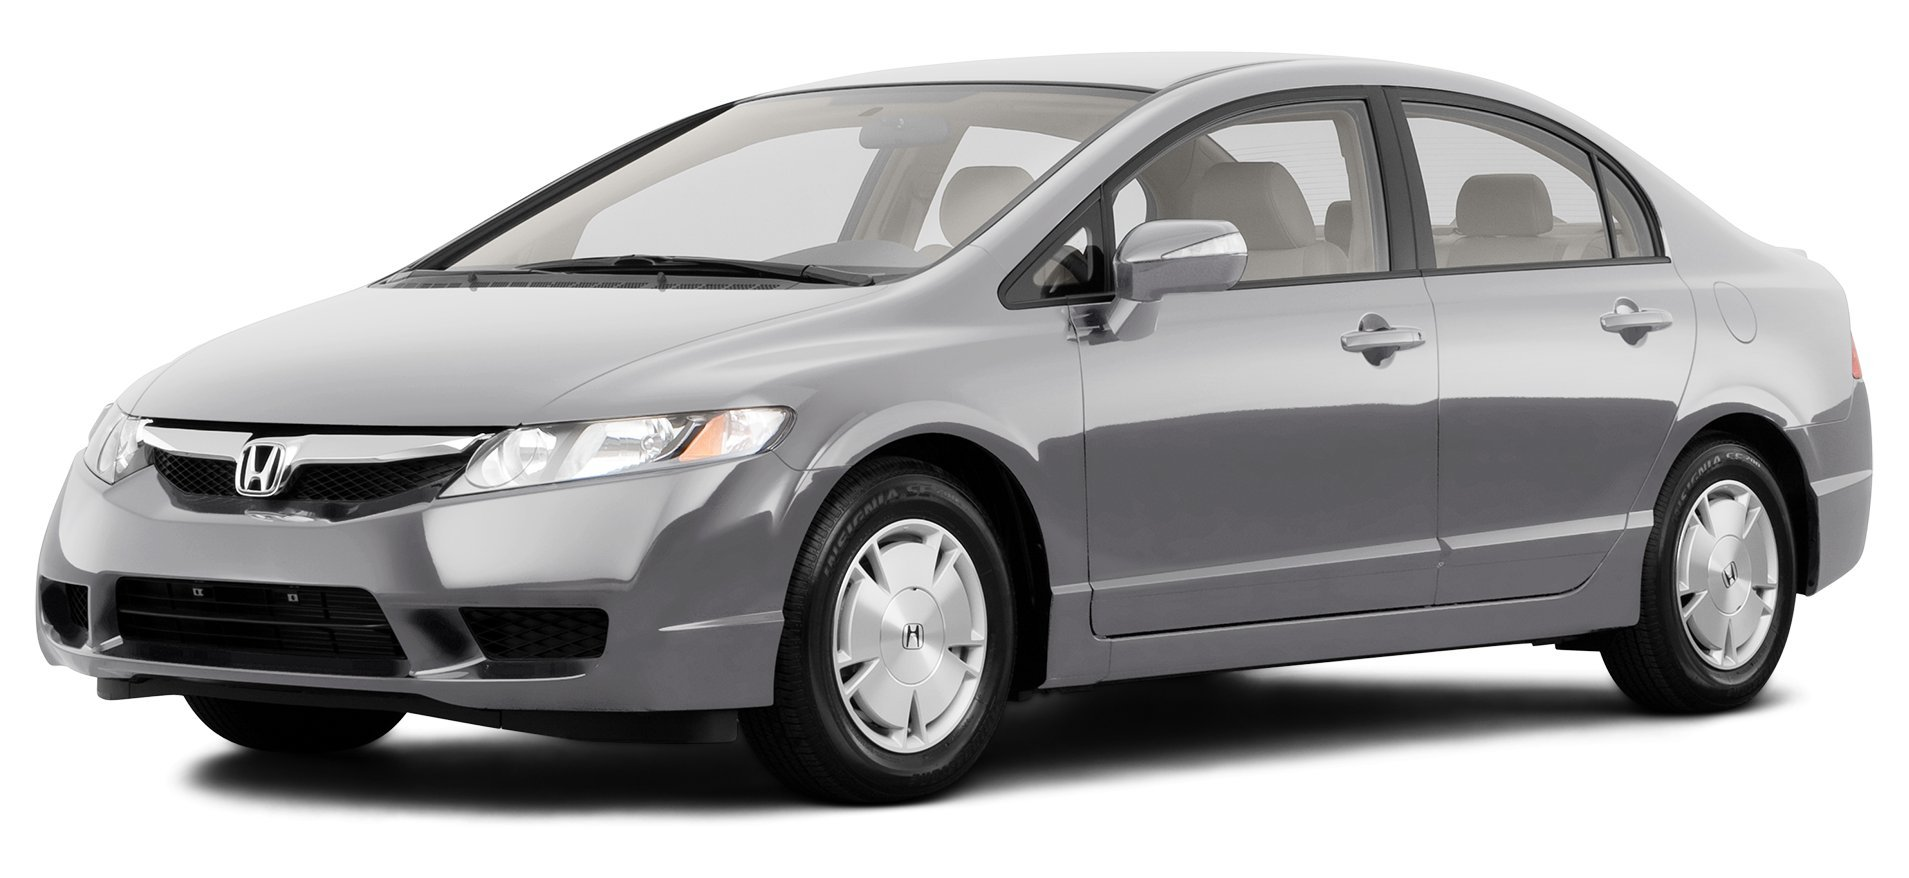 2011 honda civic reviews images and specs. Black Bedroom Furniture Sets. Home Design Ideas